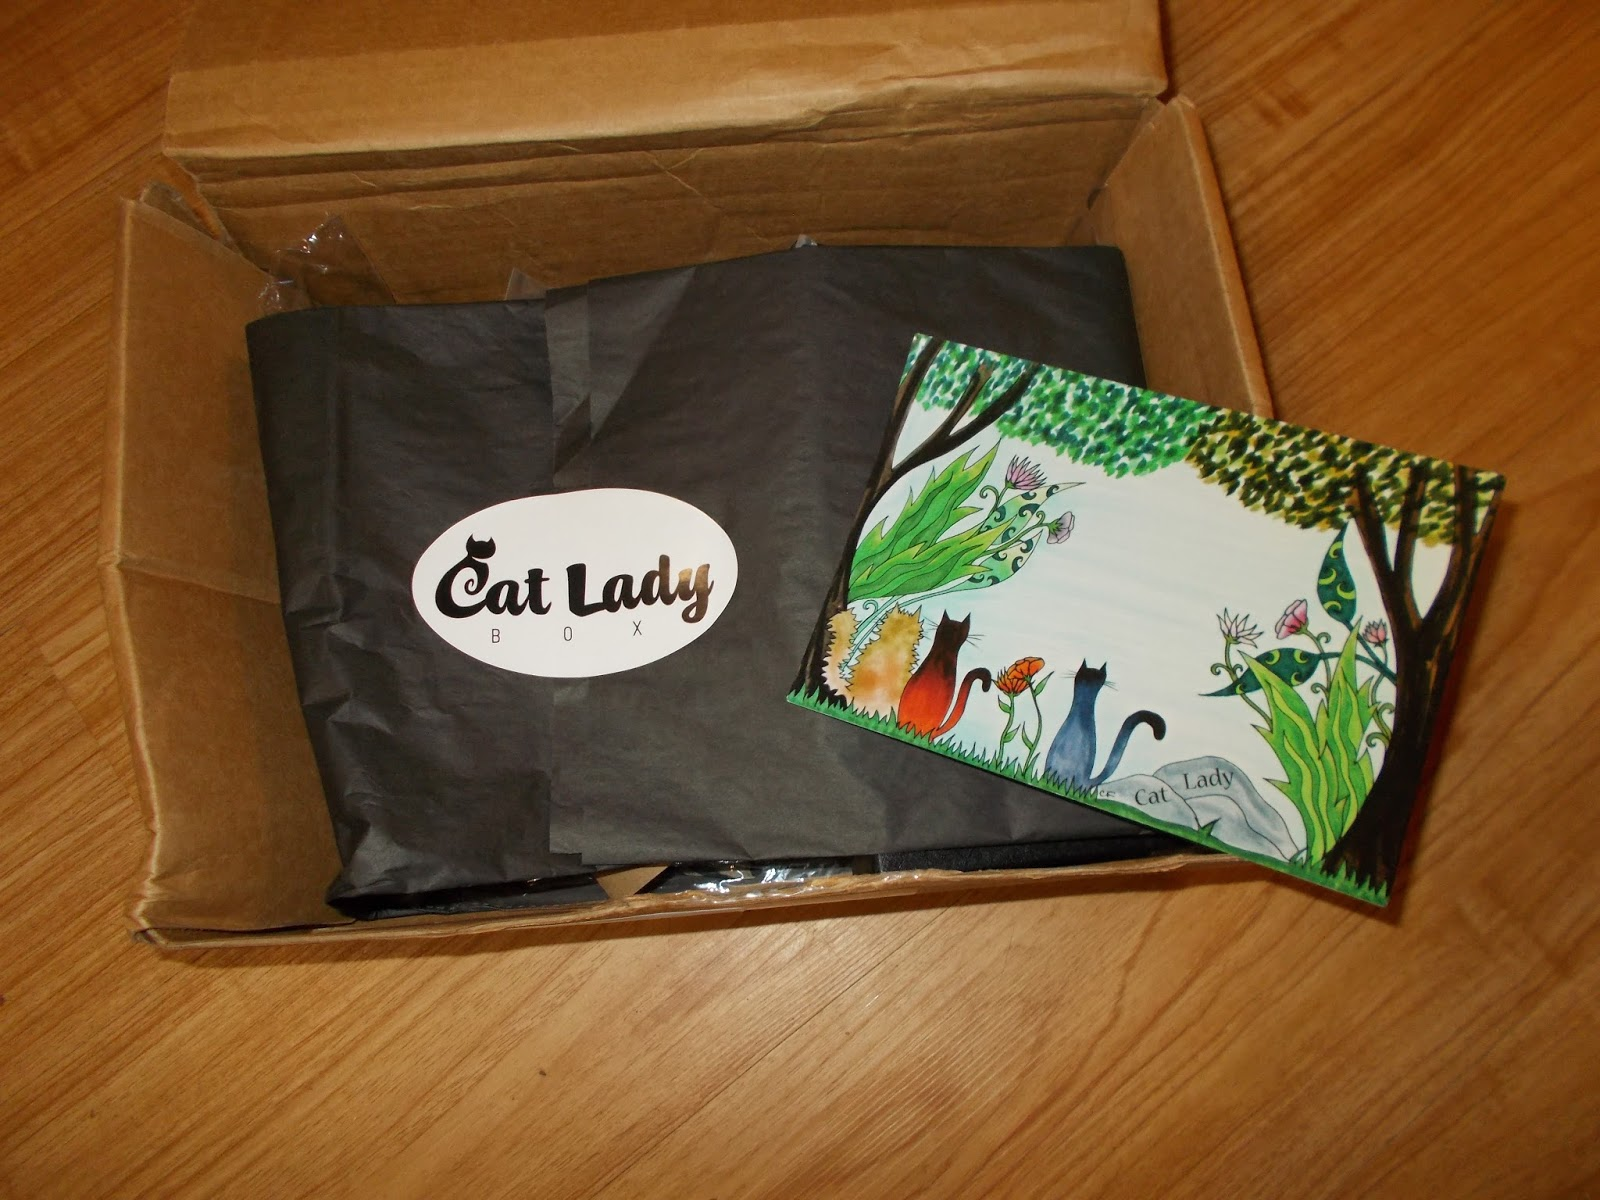 Sweetpea helped to open the box and check out the wonderfully presented gifts inside. Each month the Cat Lady Box includes hand picked cat themed items sure ...